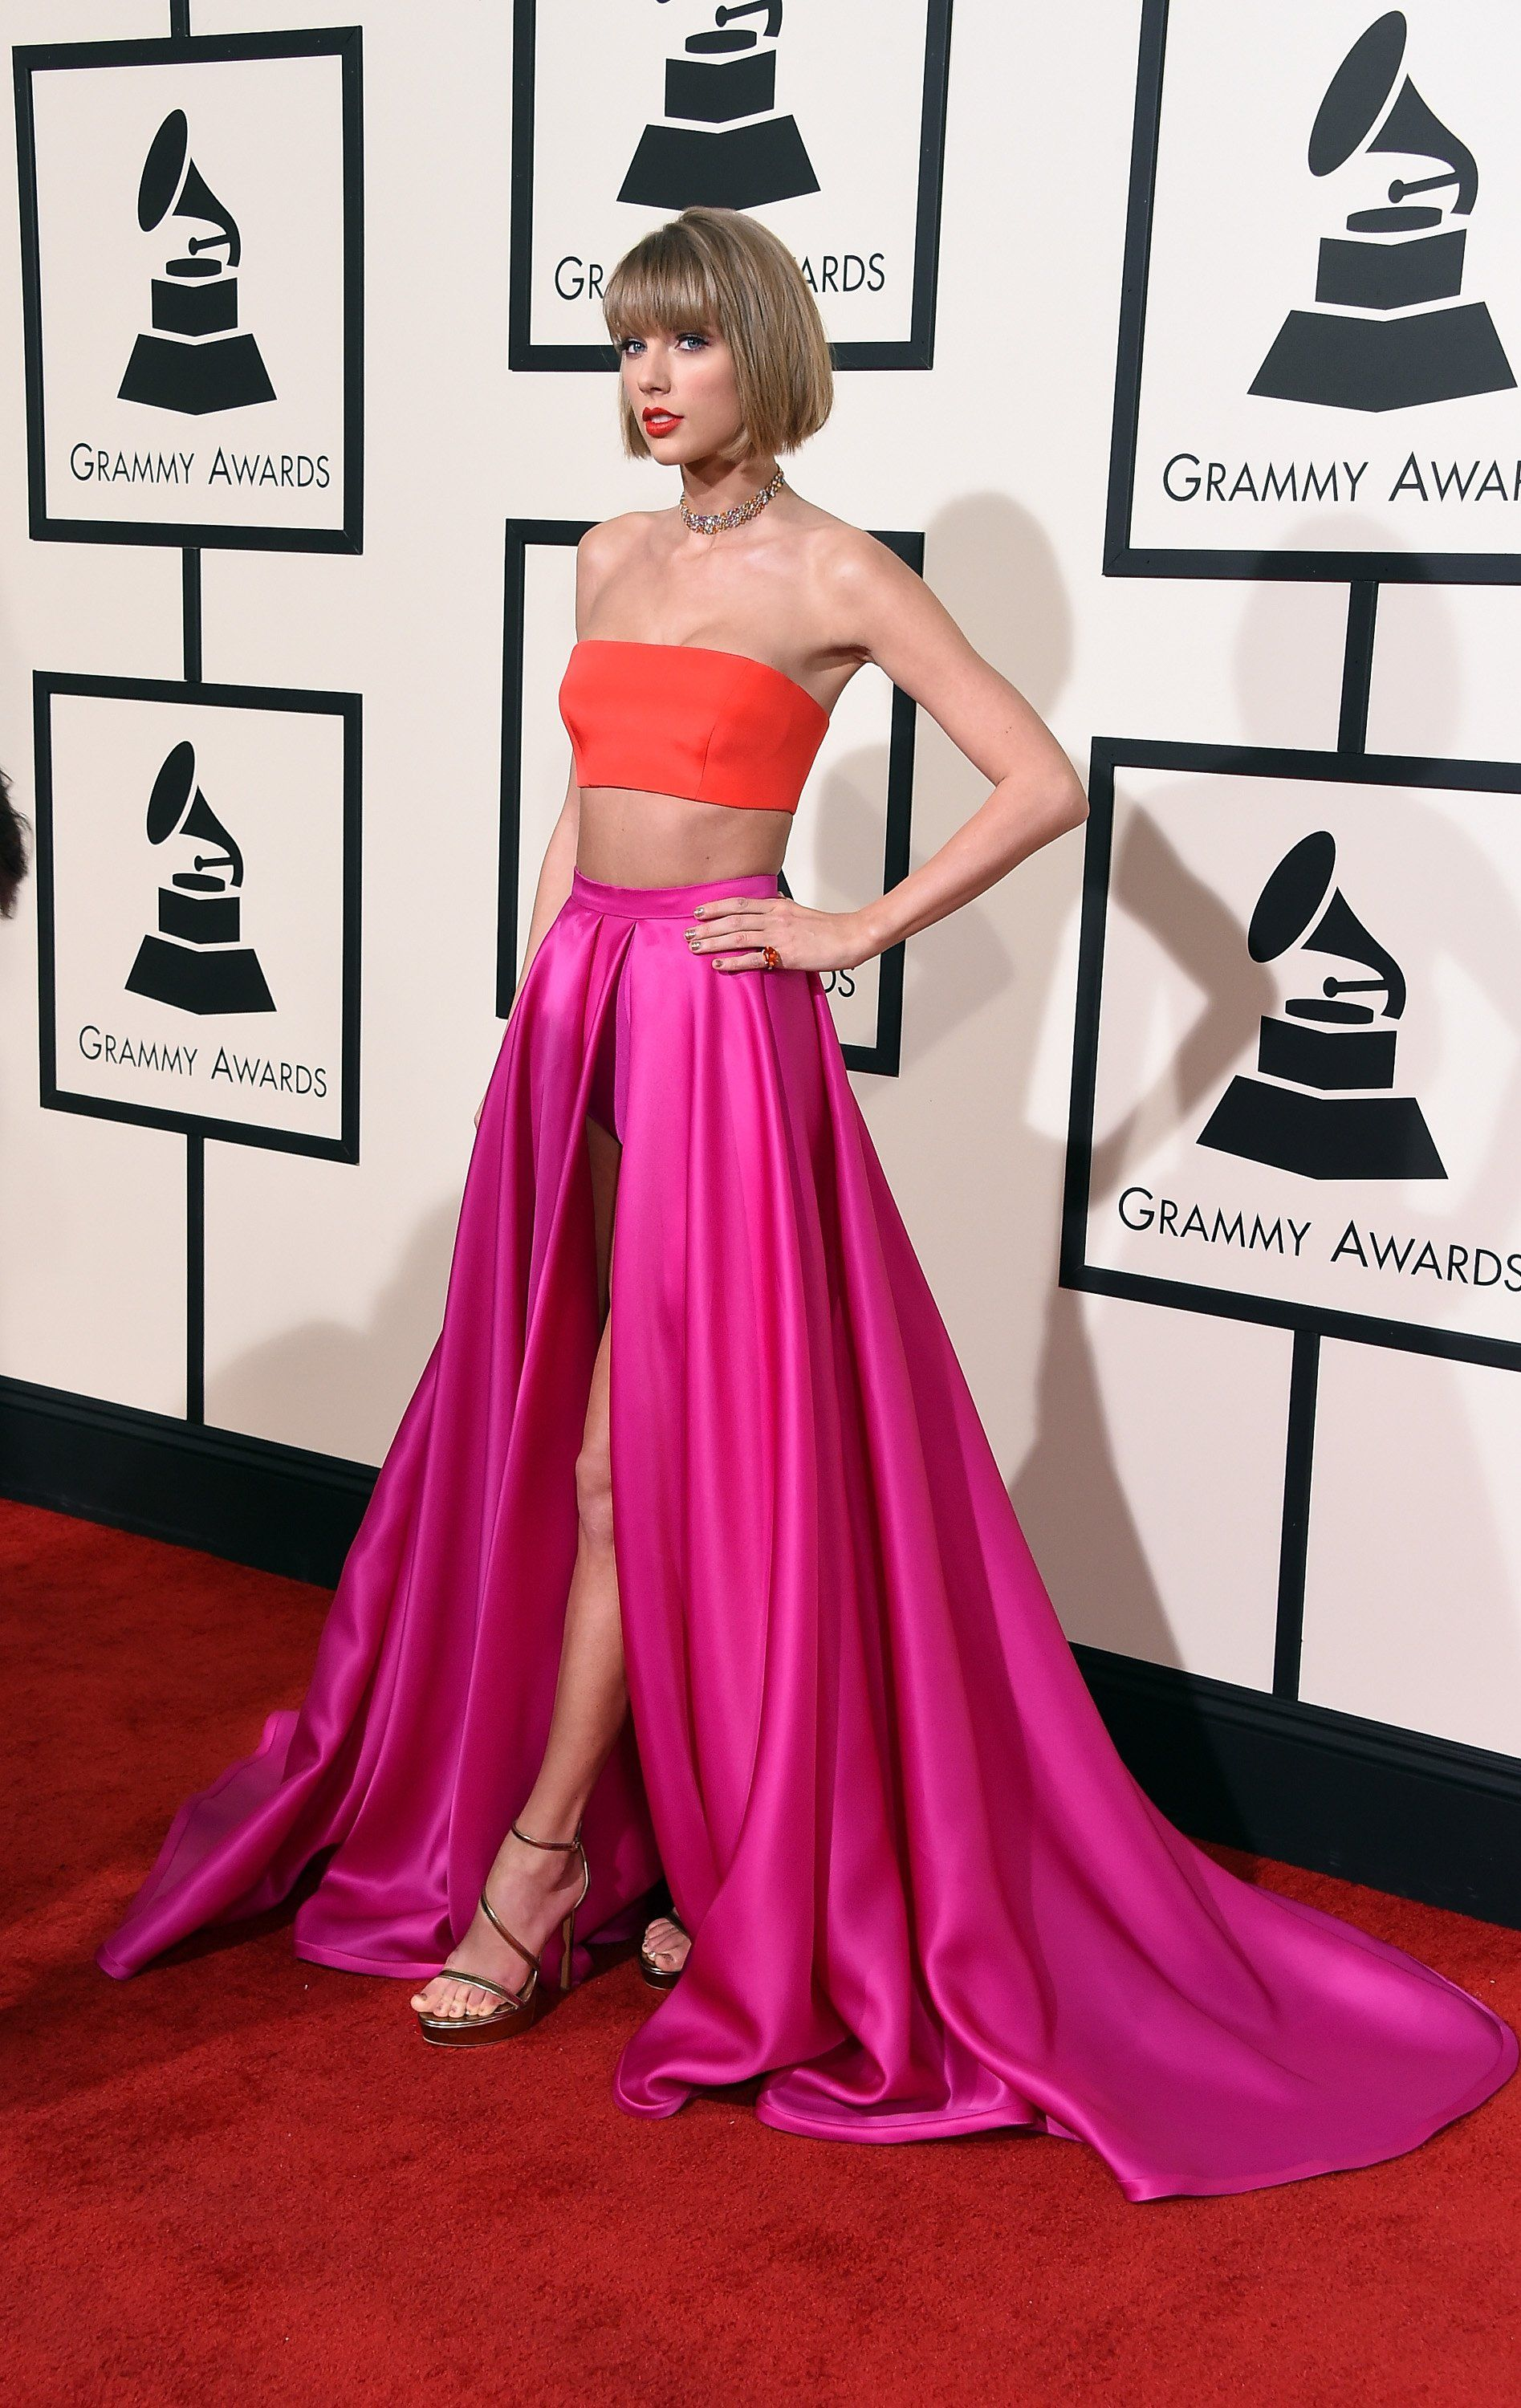 Grammys 2016 Fashion Live From The Red Carpet Taylor Swift Outfits Iconic Dresses Red Carpet Gowns